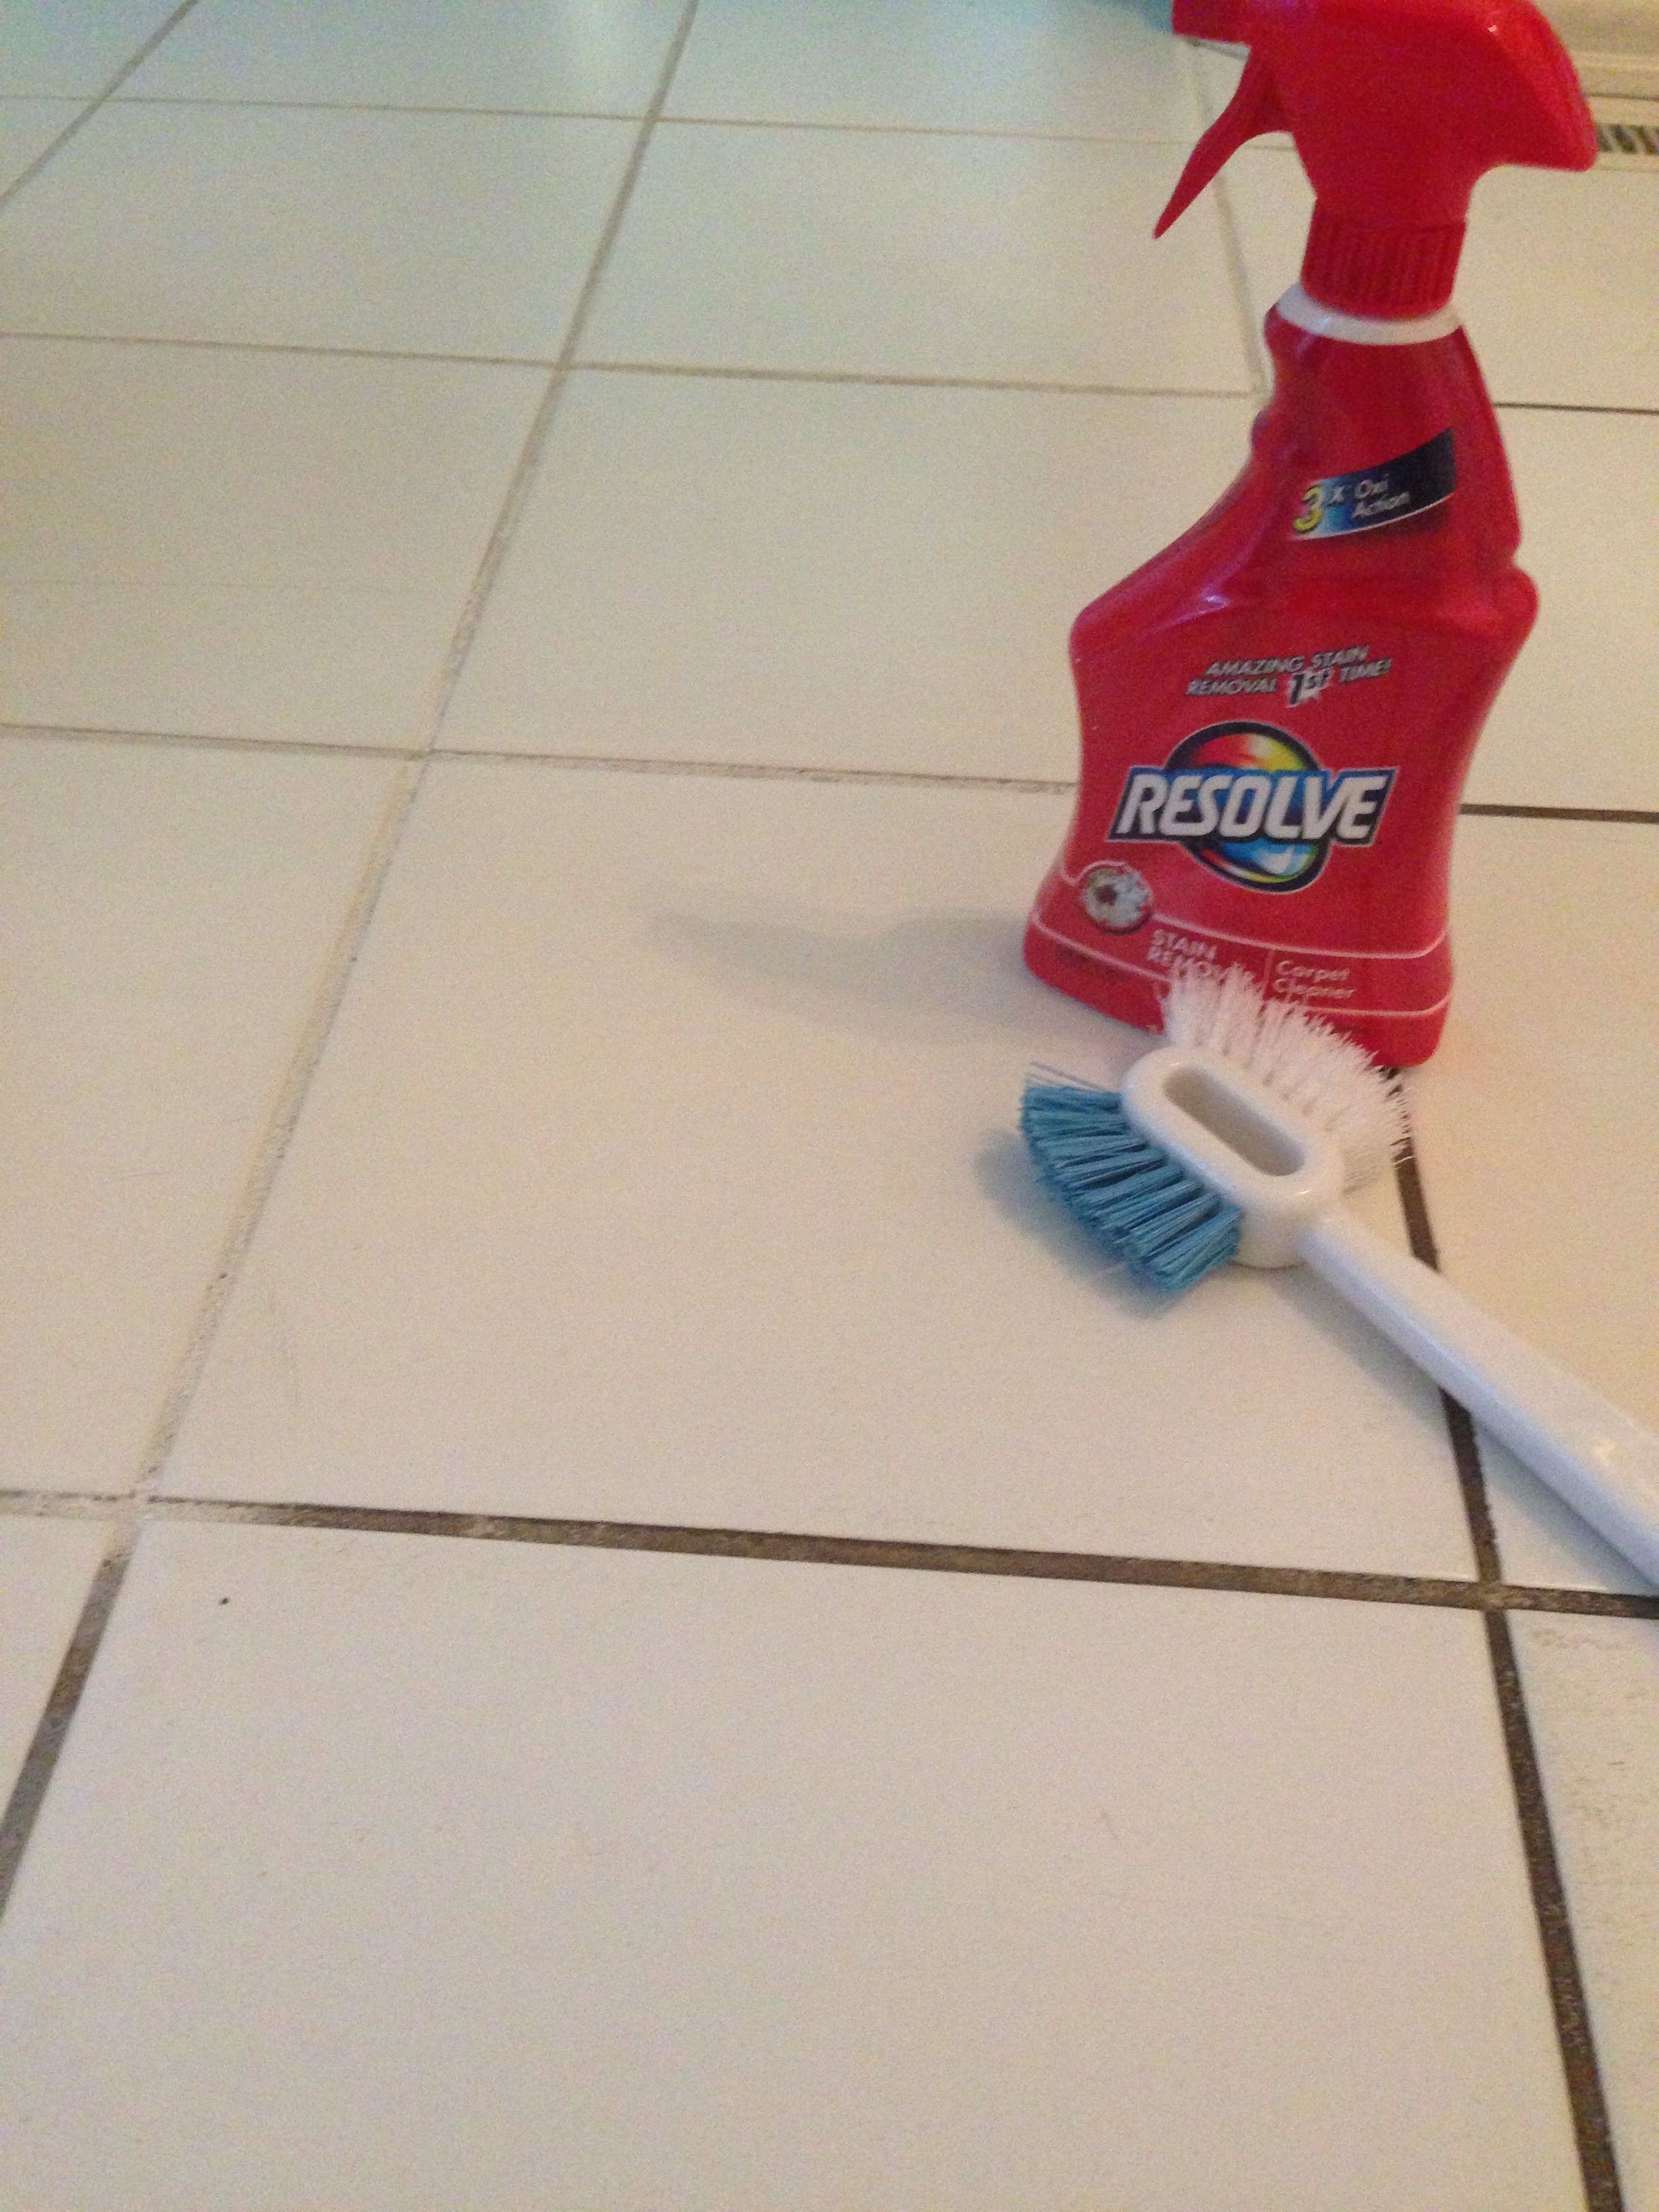 Resolve Carpet Cleaner To Clean Grout Cleaning Hacks